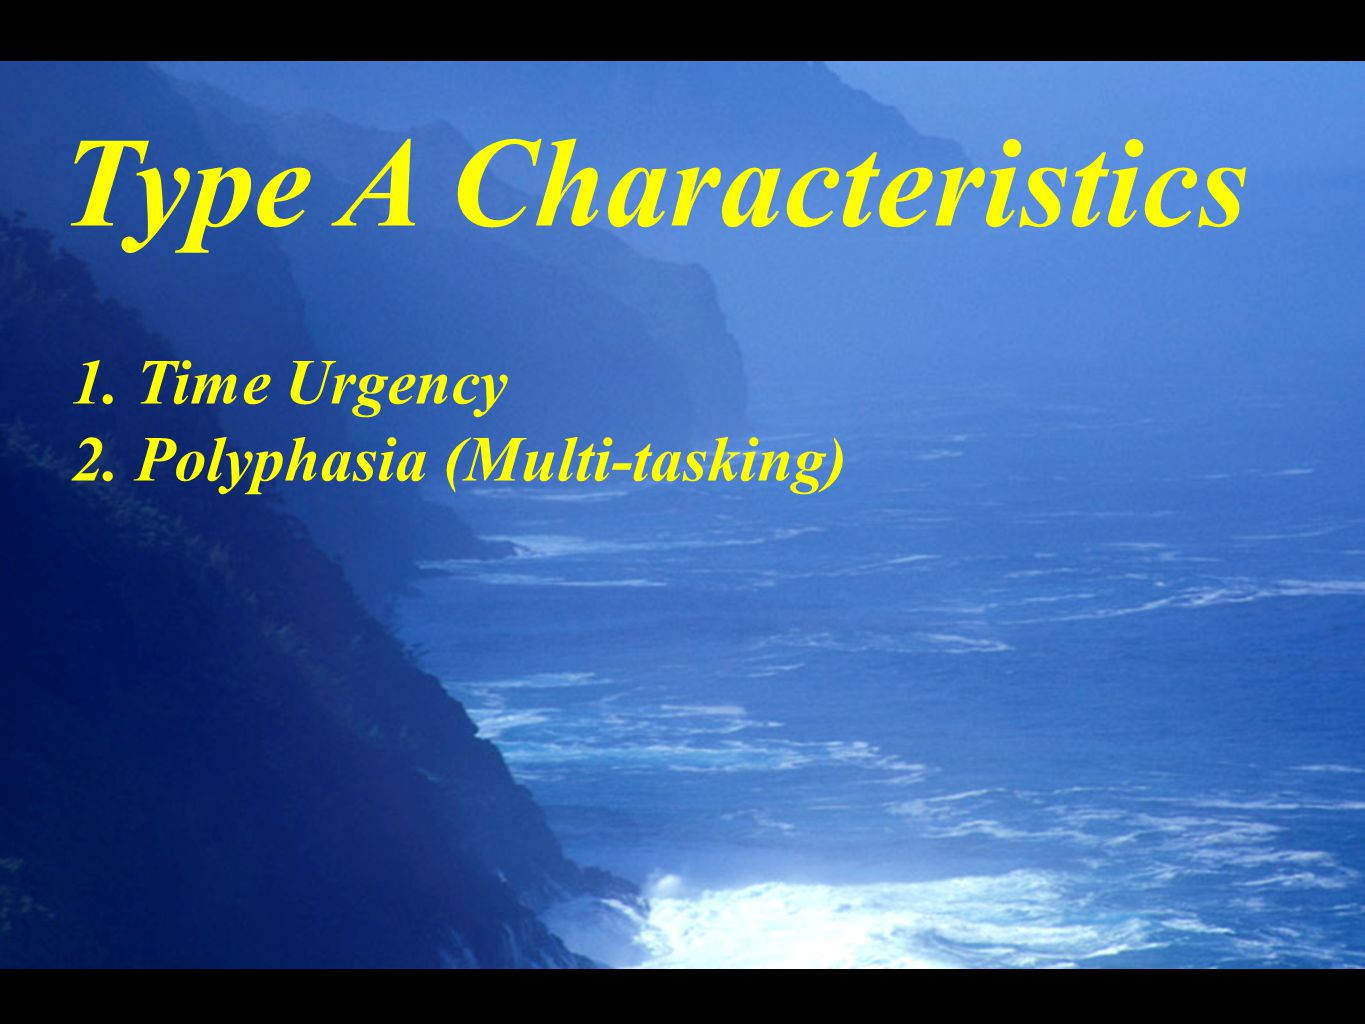 Type A Characteristics 1. Time Urgency 2. Polyphasia (Multi-tasking)